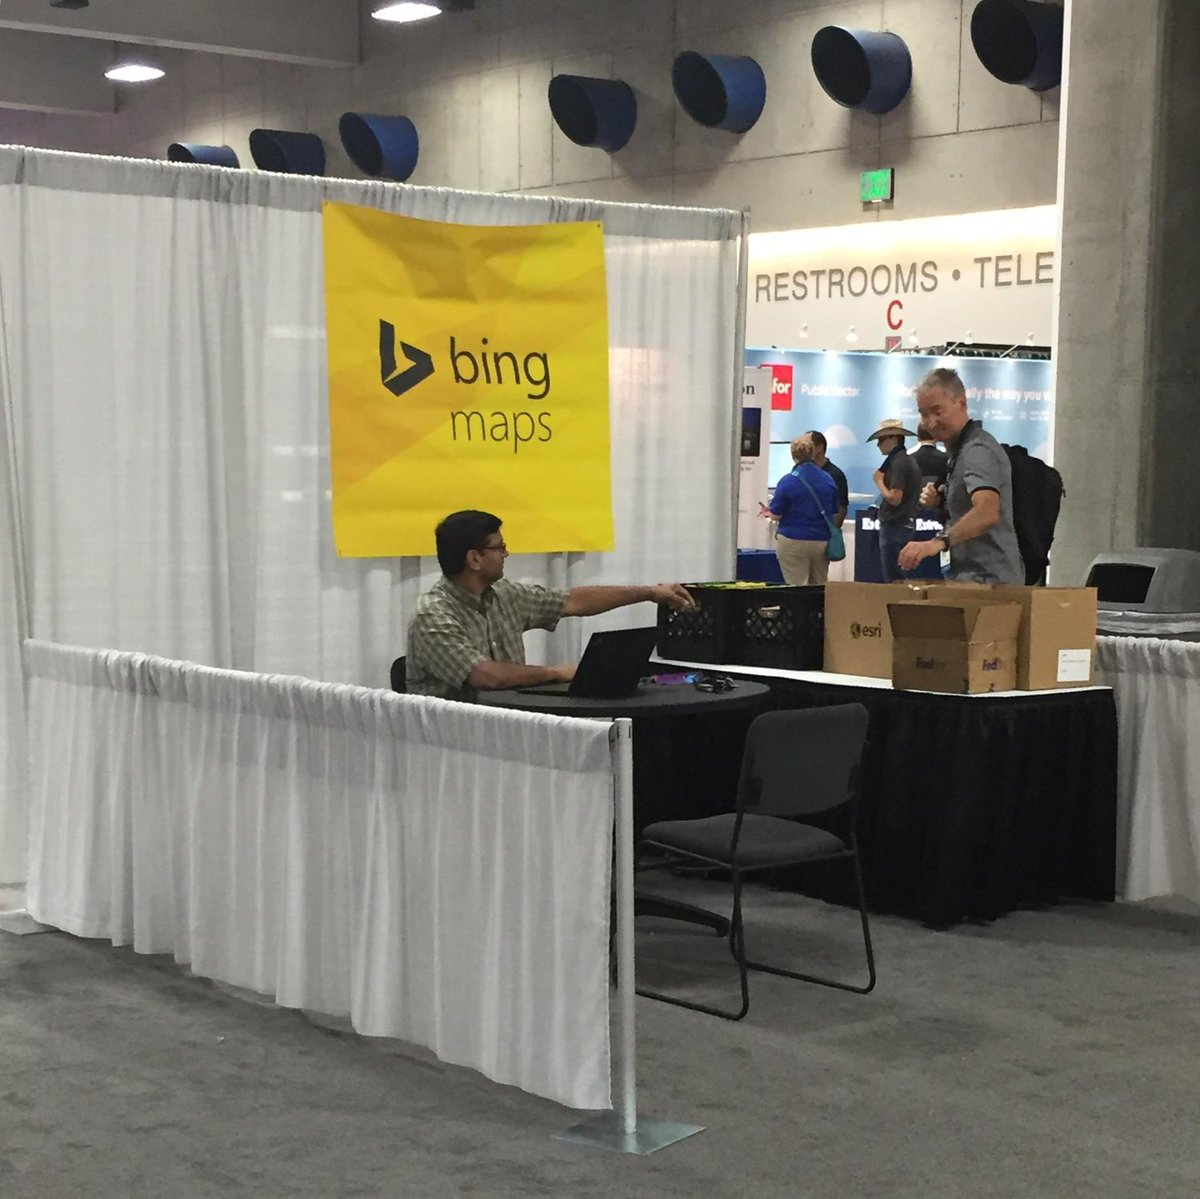 Bing Maps went all out this year! #esriuc http://t.co/0qnVfRWXOp